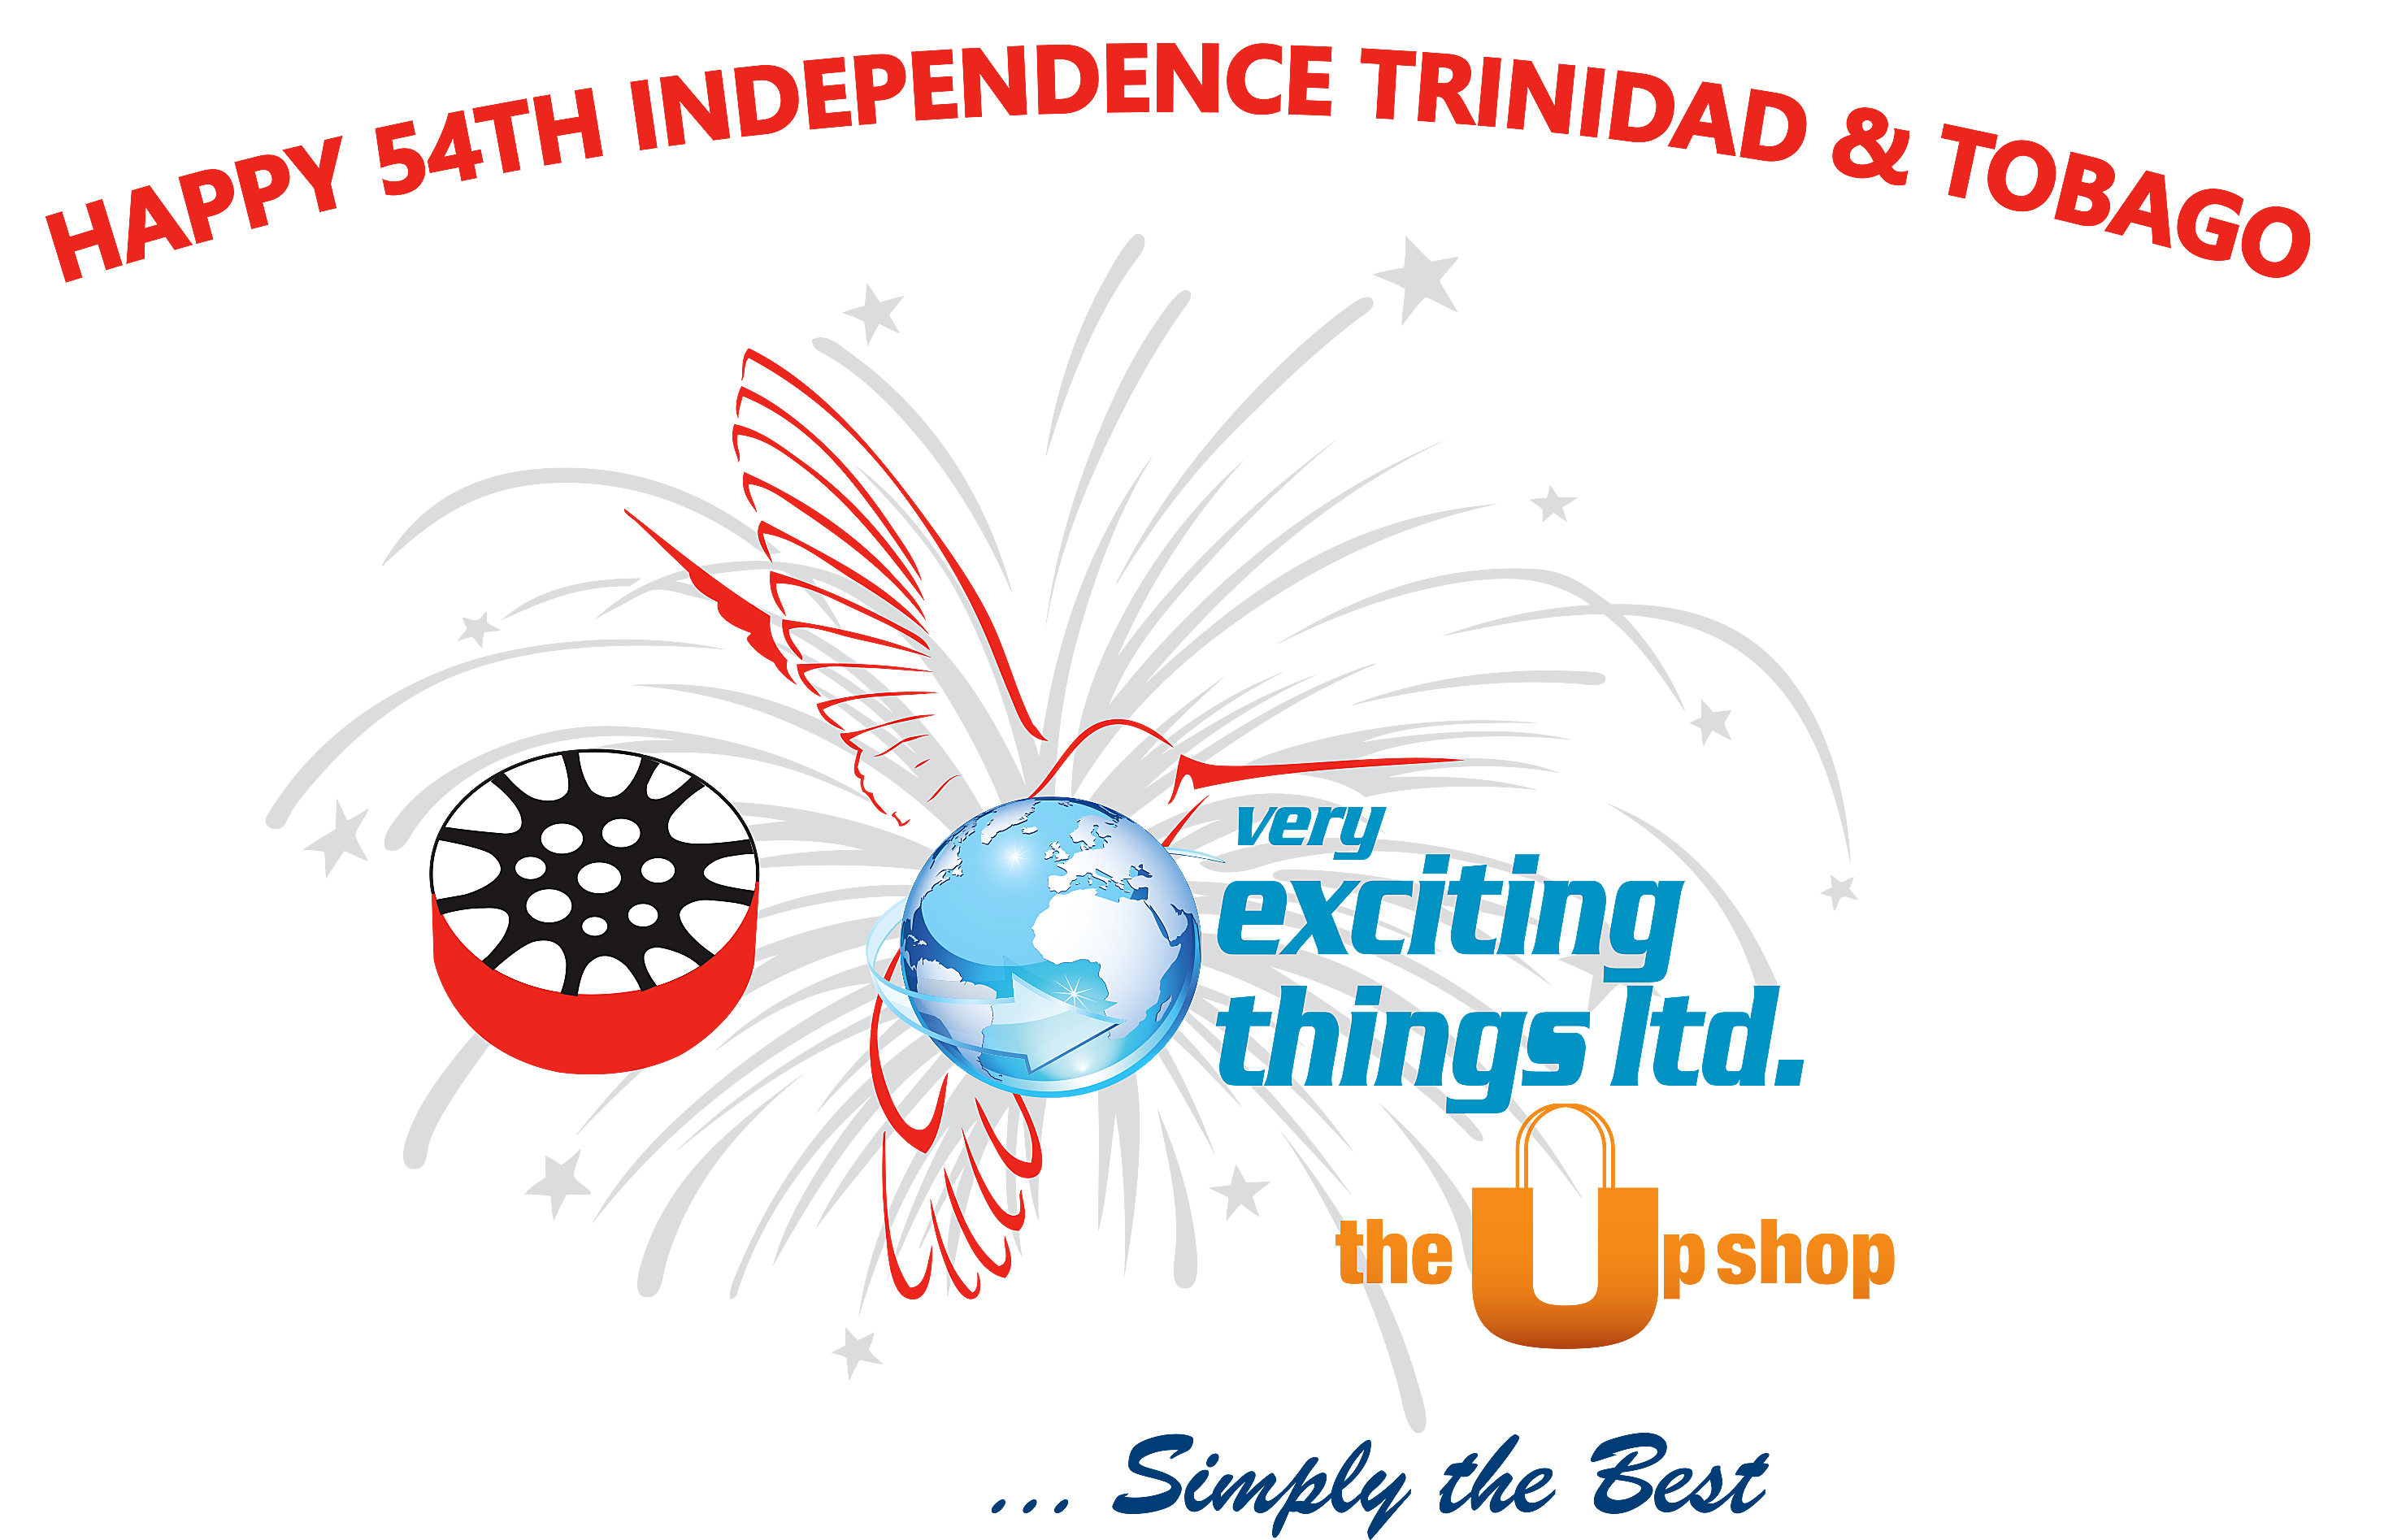 T&T Independence 2016